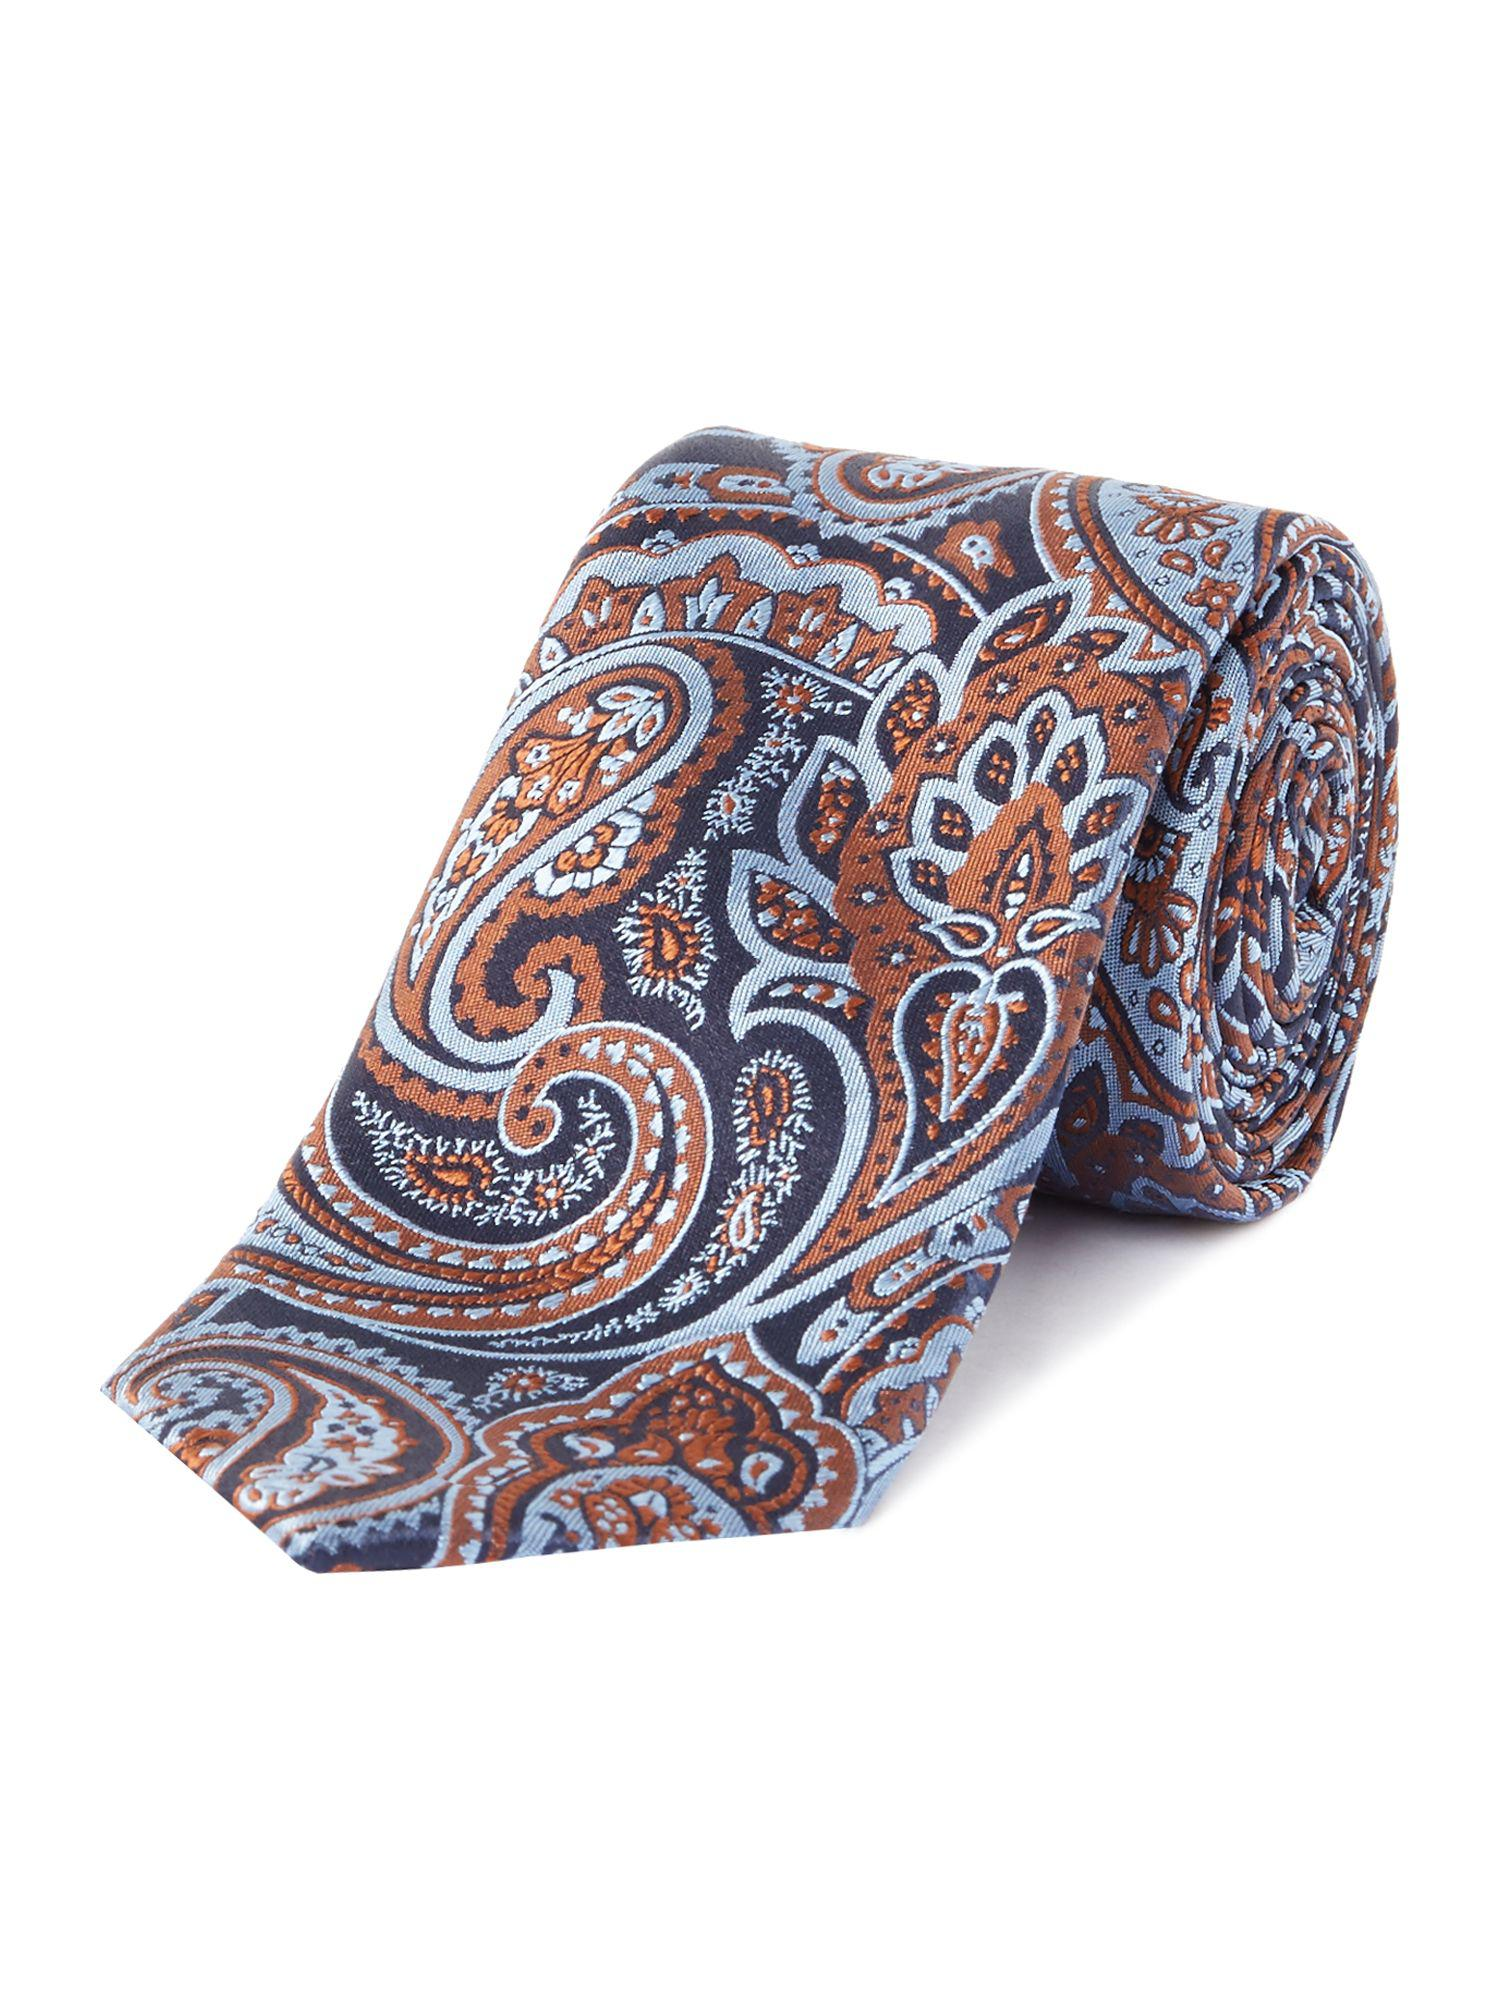 e0a5f143455a61 Ted Baker Samford Paisley Print in Blue for Men - Lyst